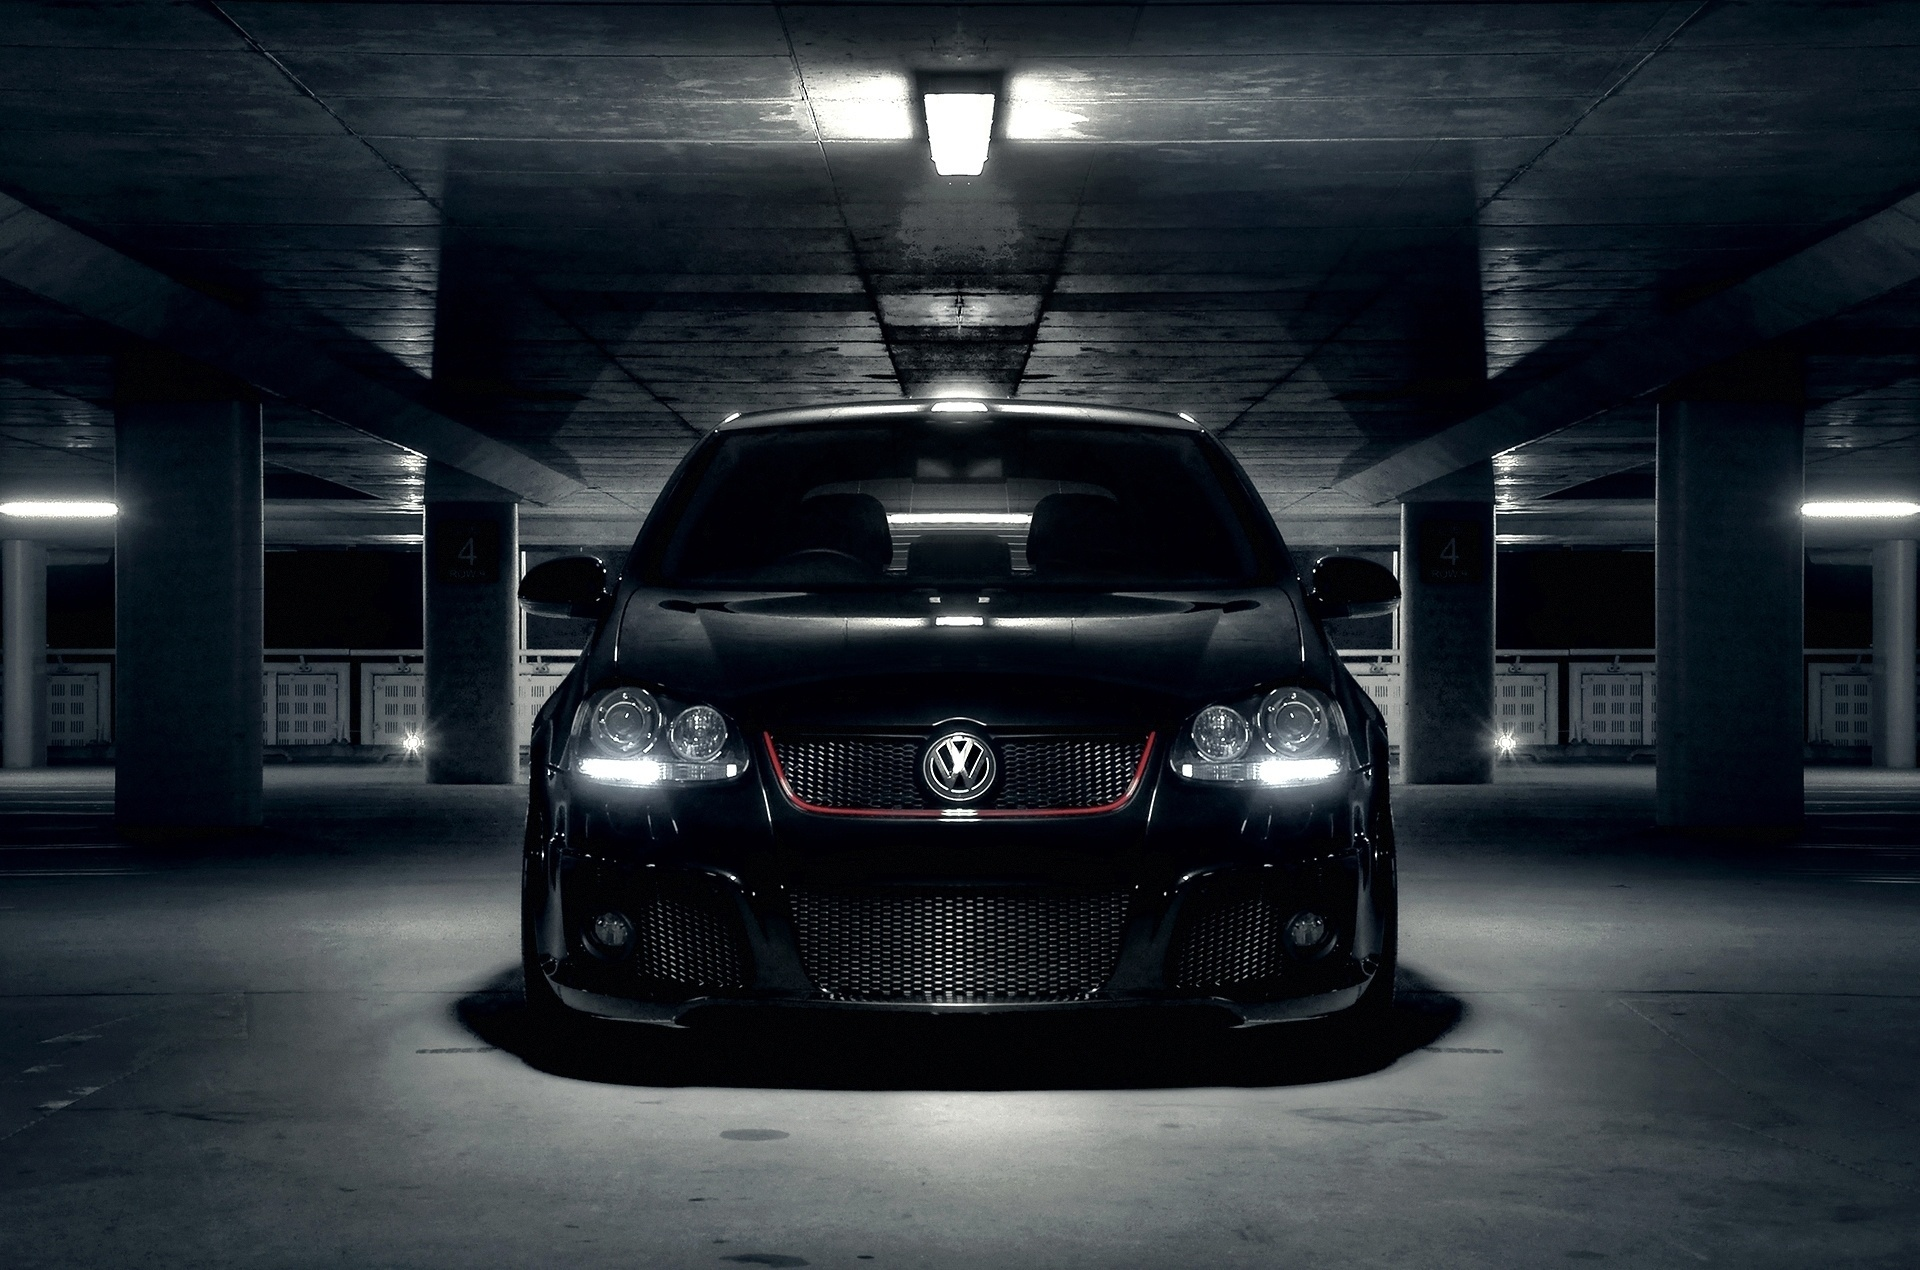 Volkswagen Golf Wallpaper  Volkswagen Golf Wallpaper Black